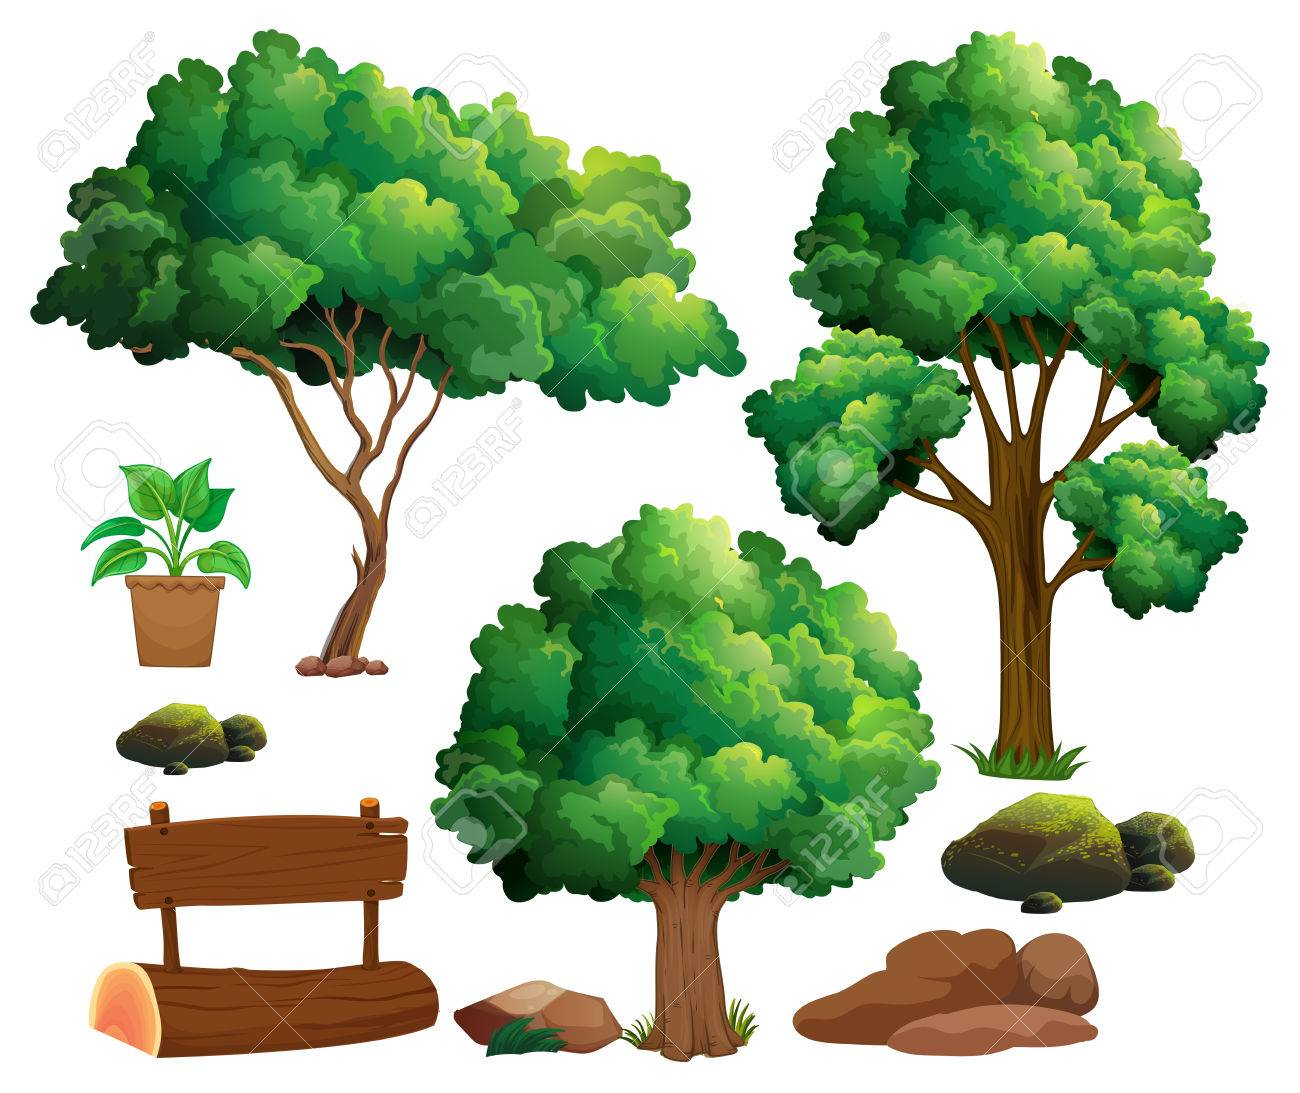 Different Types Of Trees And Garden Elements Illustration Royalty